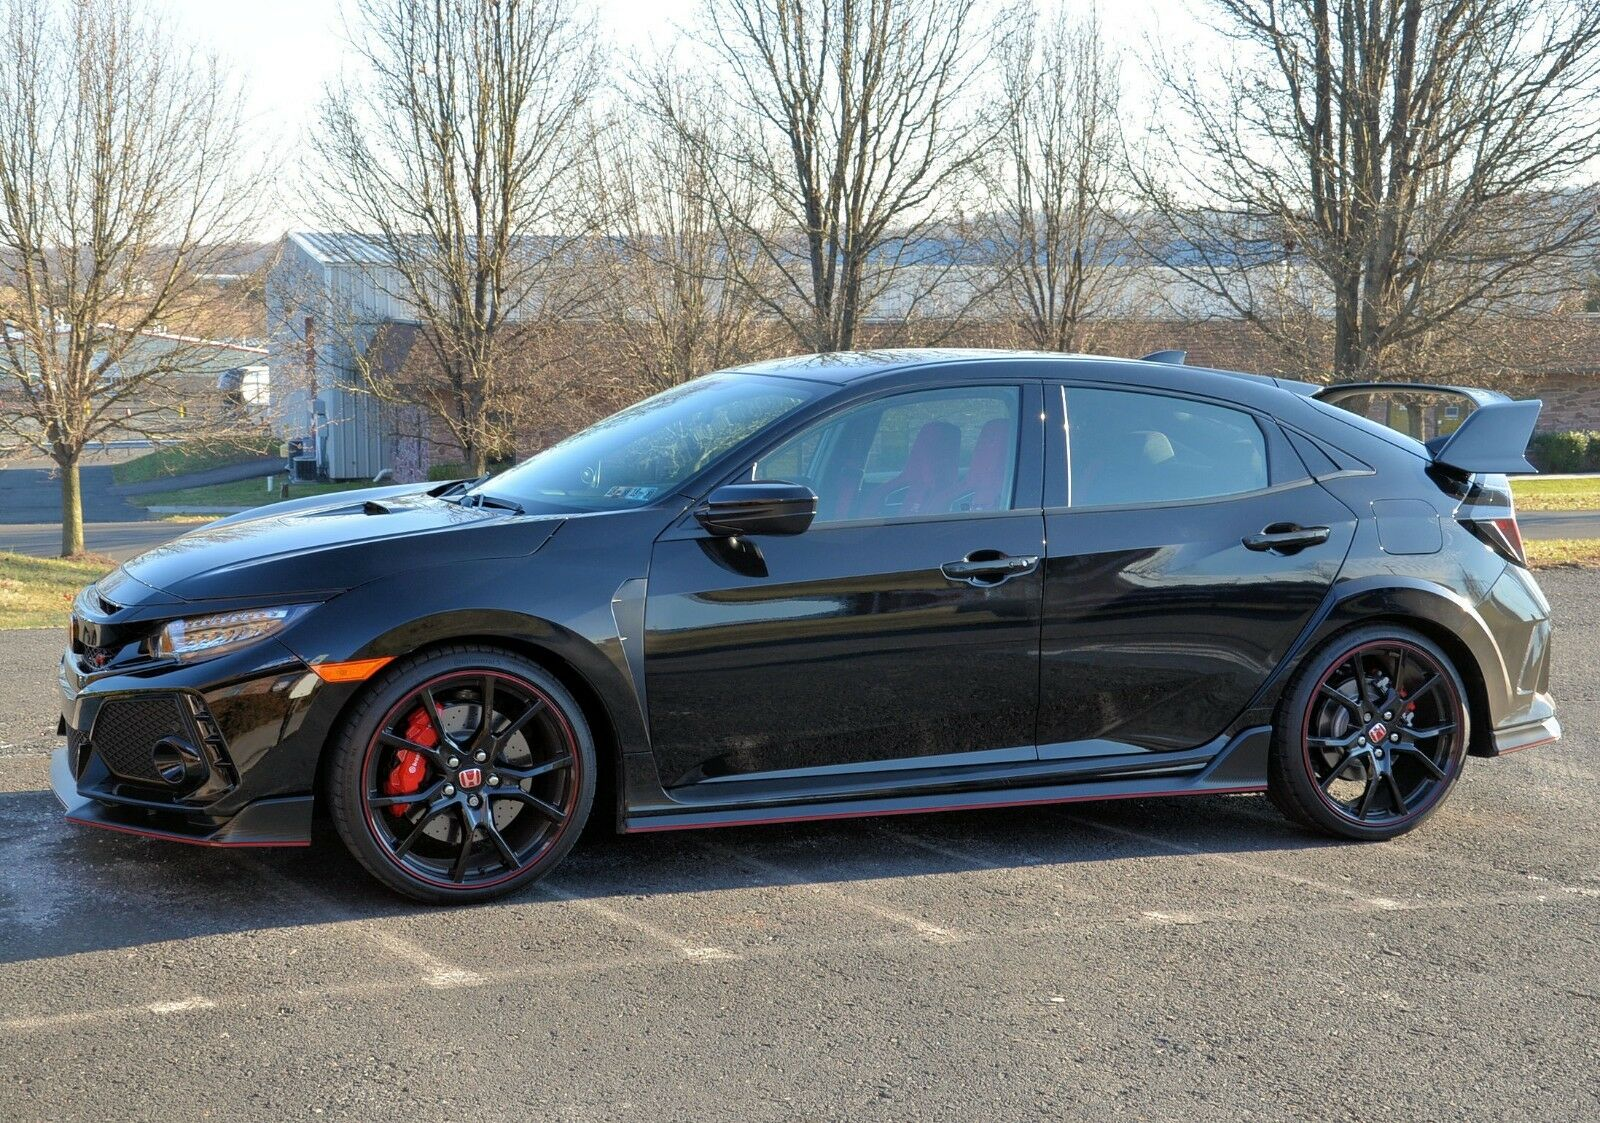 2018 Honda Civic Touring Type R Turbo 2018 Honda Civic Type R Touring Crystal Black Pearl 332 Miles Have Title No Tax!